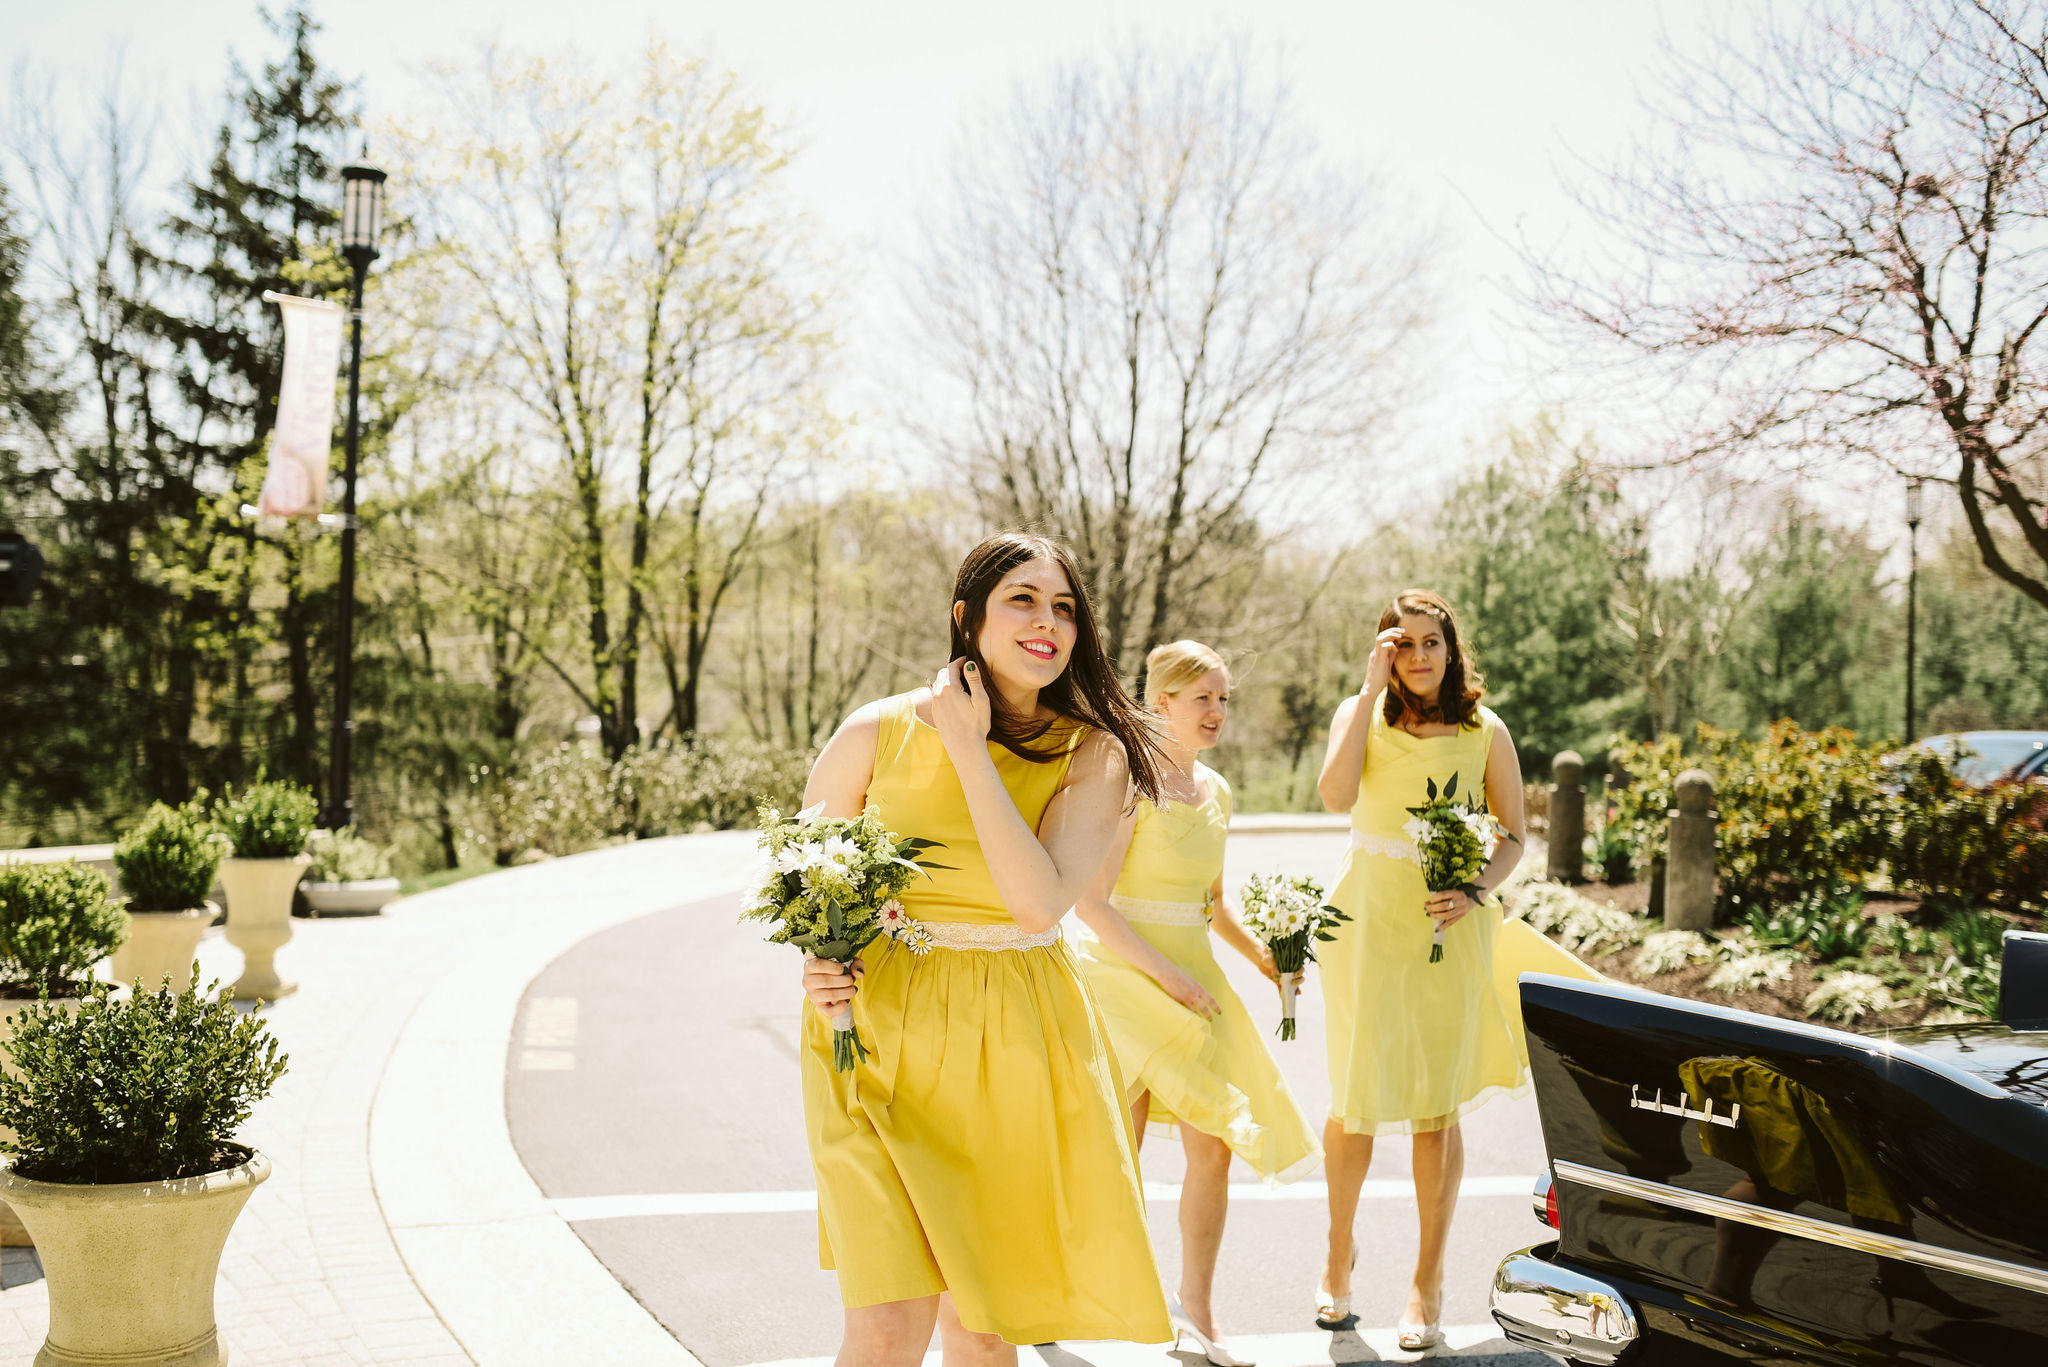 Baltimore, Church Wedding, Maryland Wedding Photographer, Vintage, Classic, Yellow Bridesmaids Dresses, Getting to the Church